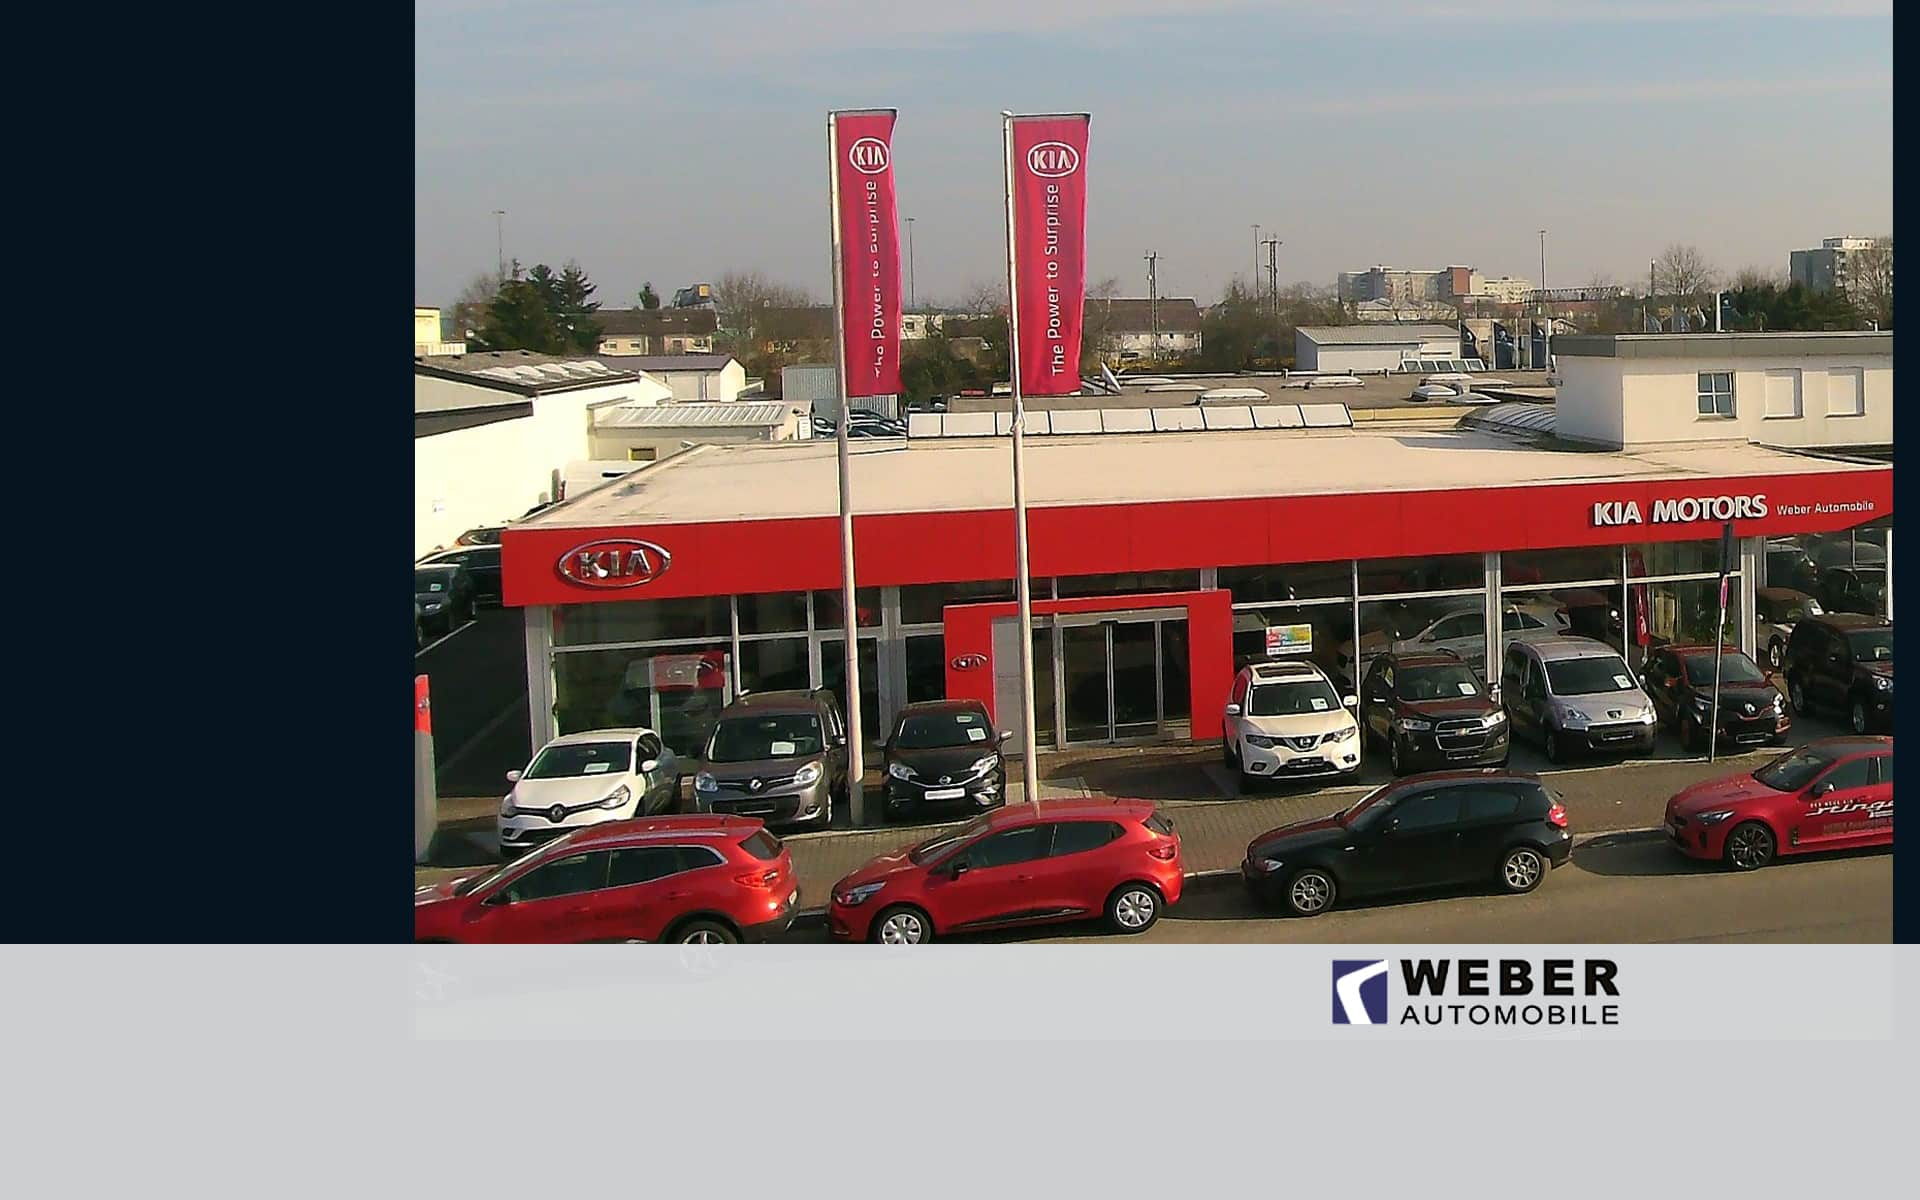 /content/dam/kwcms/kme-dealer/de-dealer/de-single-2745-weber/homepage/kia-weber-automobile-willkommen-mobile-1536x770.jpg